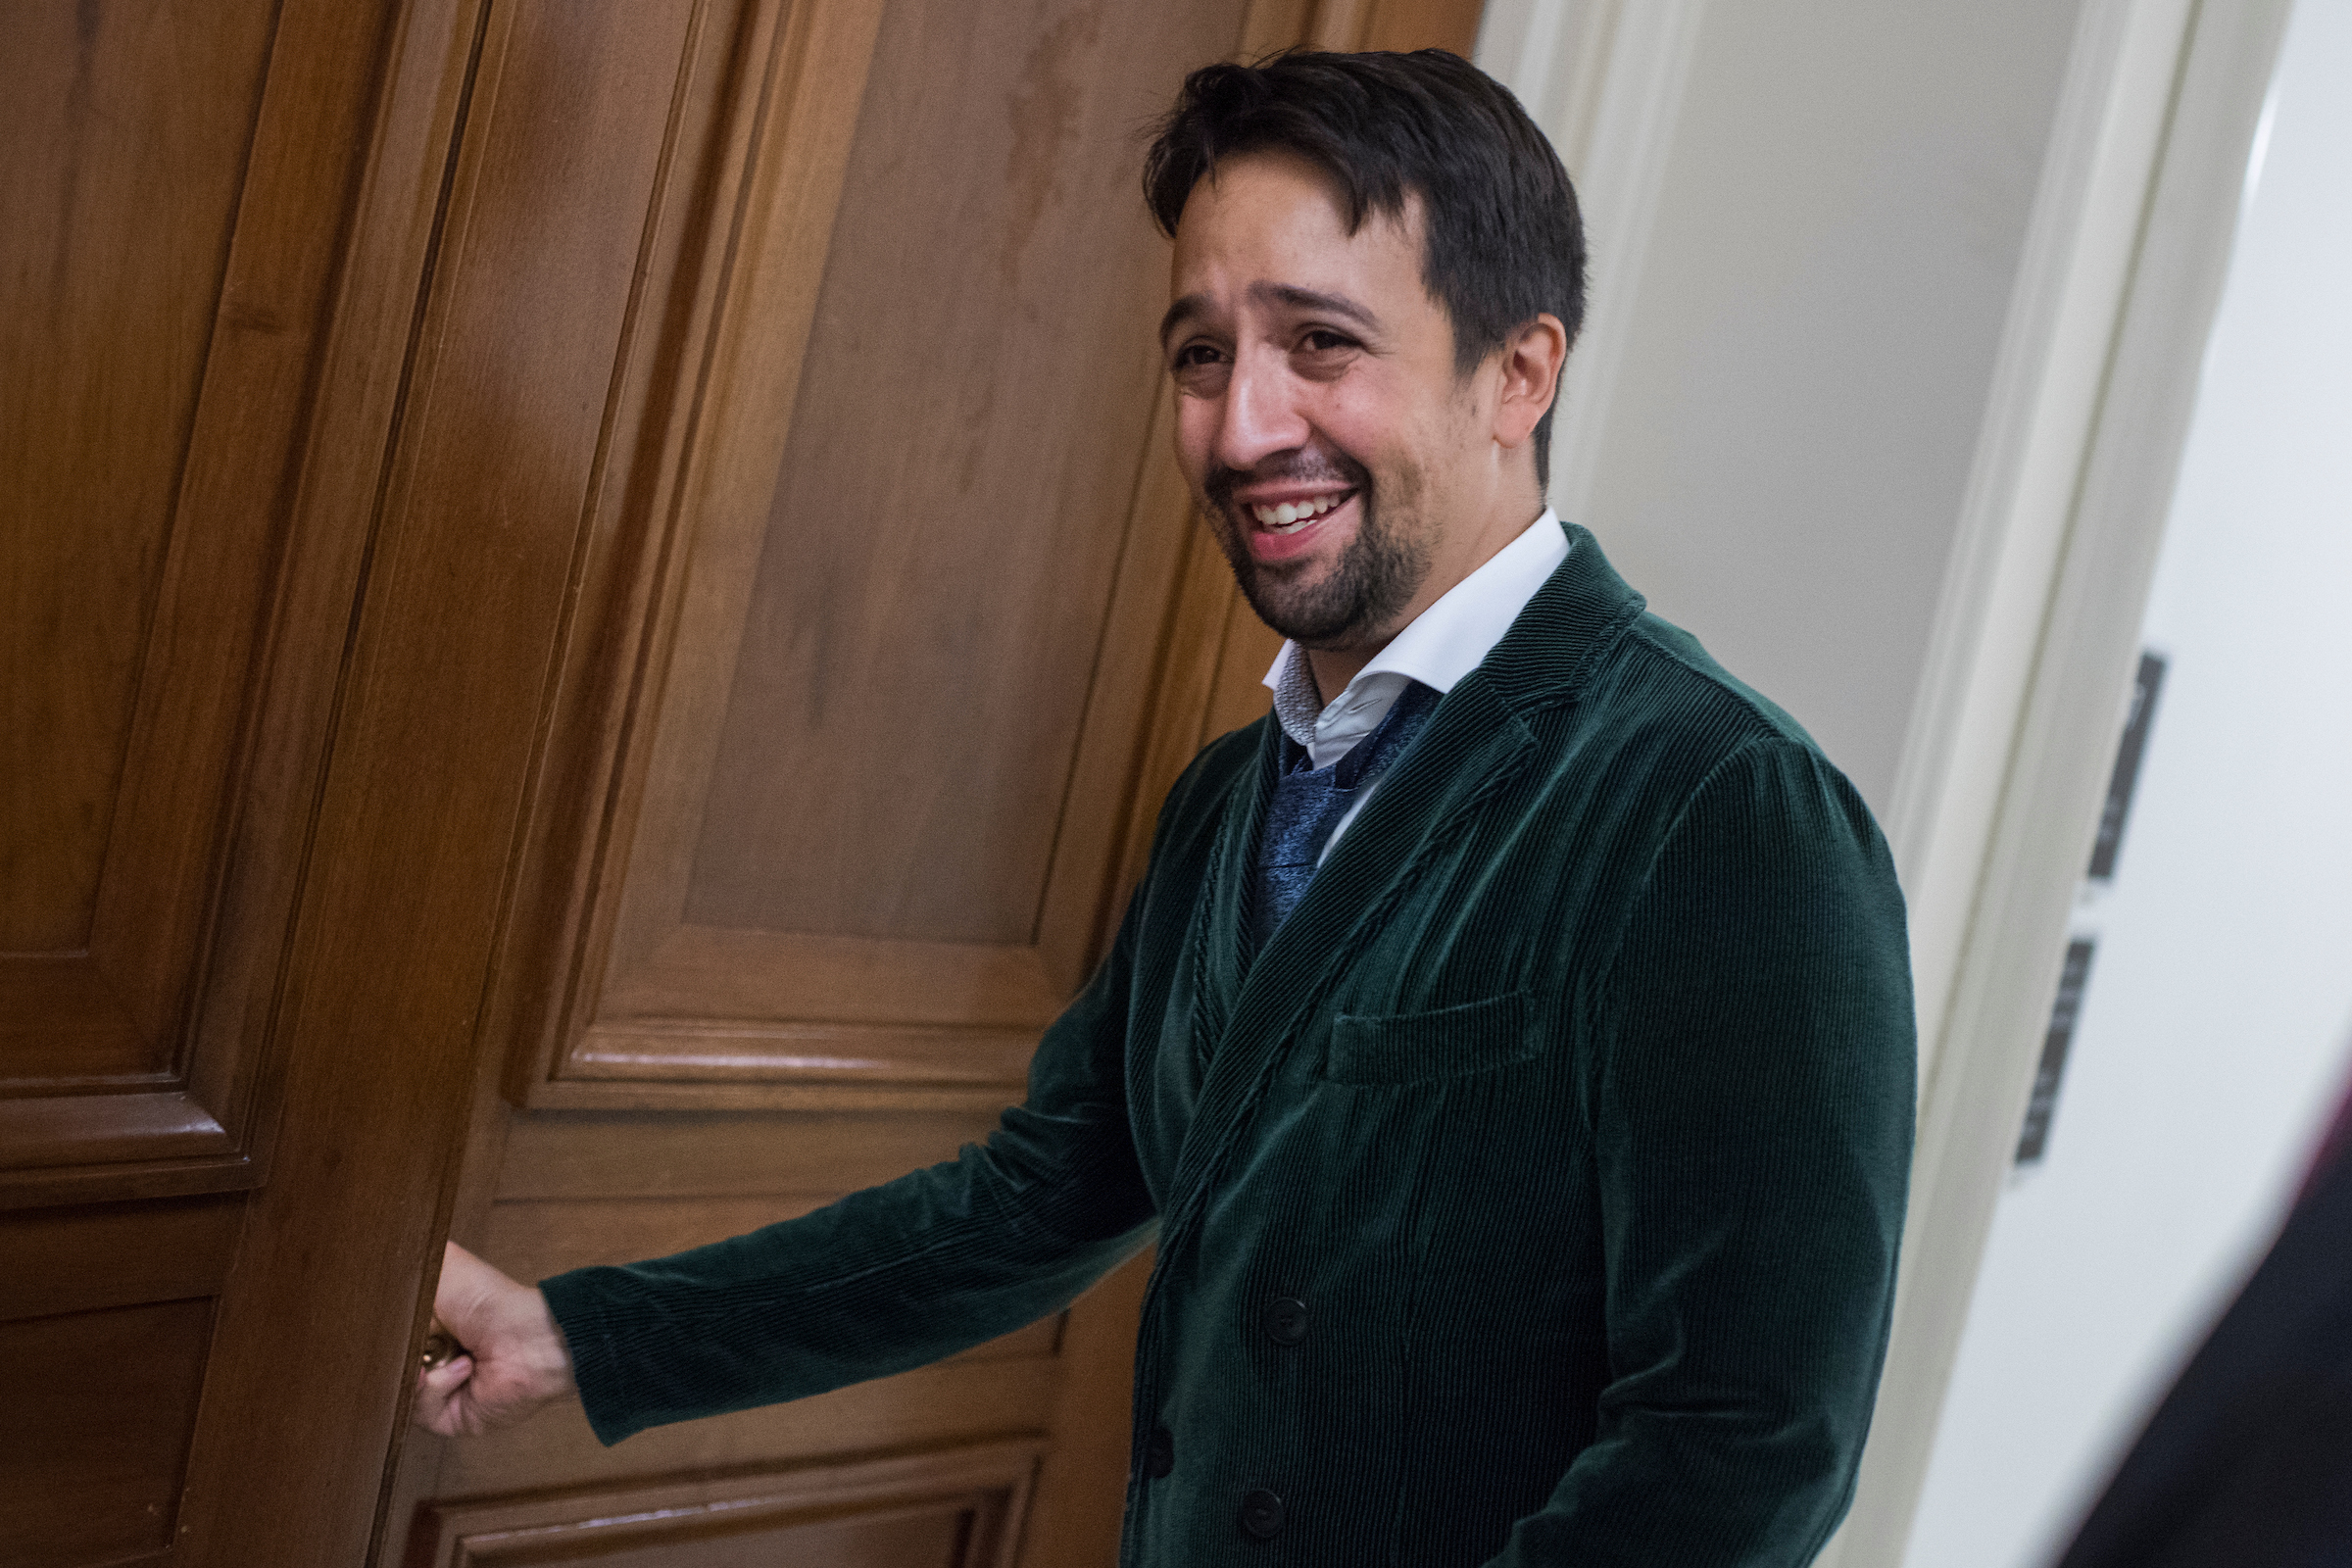 UNITED STATES - SEPTEMBER 13: Lin-Manuel Miranda, creator of the musical Hamilton, makes his way to a meeting at the House Appropriations Subcommittee on Interior, Environment and Related Agencies in Rayburn, during a round of meetings to urge federal funding for the national endowments for the arts and humanities on September 13, 2017. (Photo By Tom Williams/CQ Roll Call)